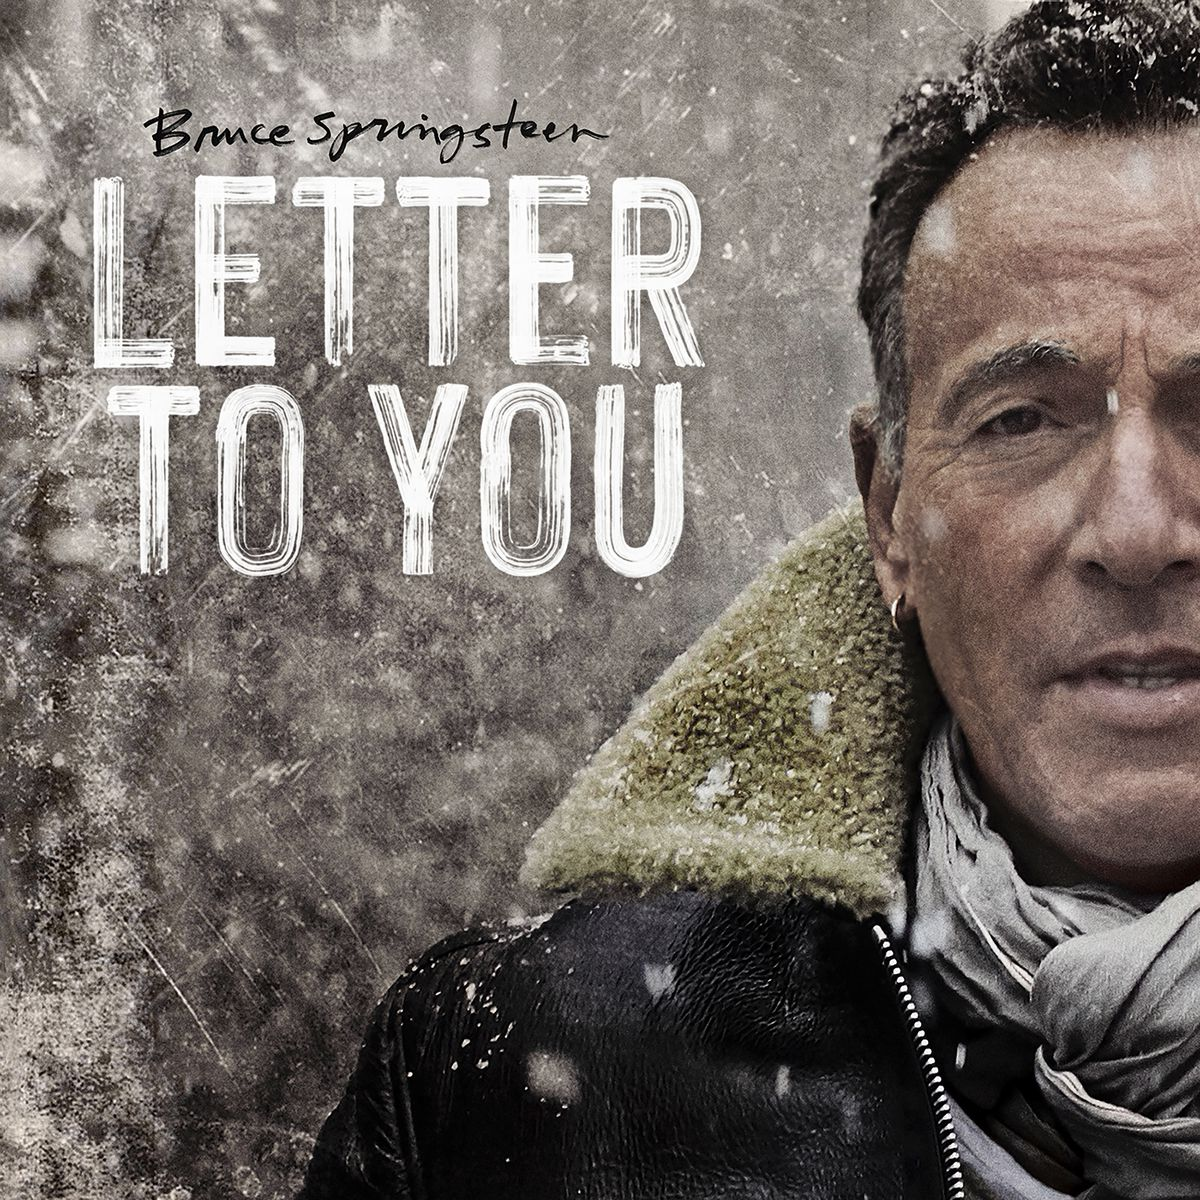 """This cover image released by Columbia Records shows """"Letter To You"""" by Bruce Springsteen. The album was named one of the top 10 of the year by the Associated Press."""